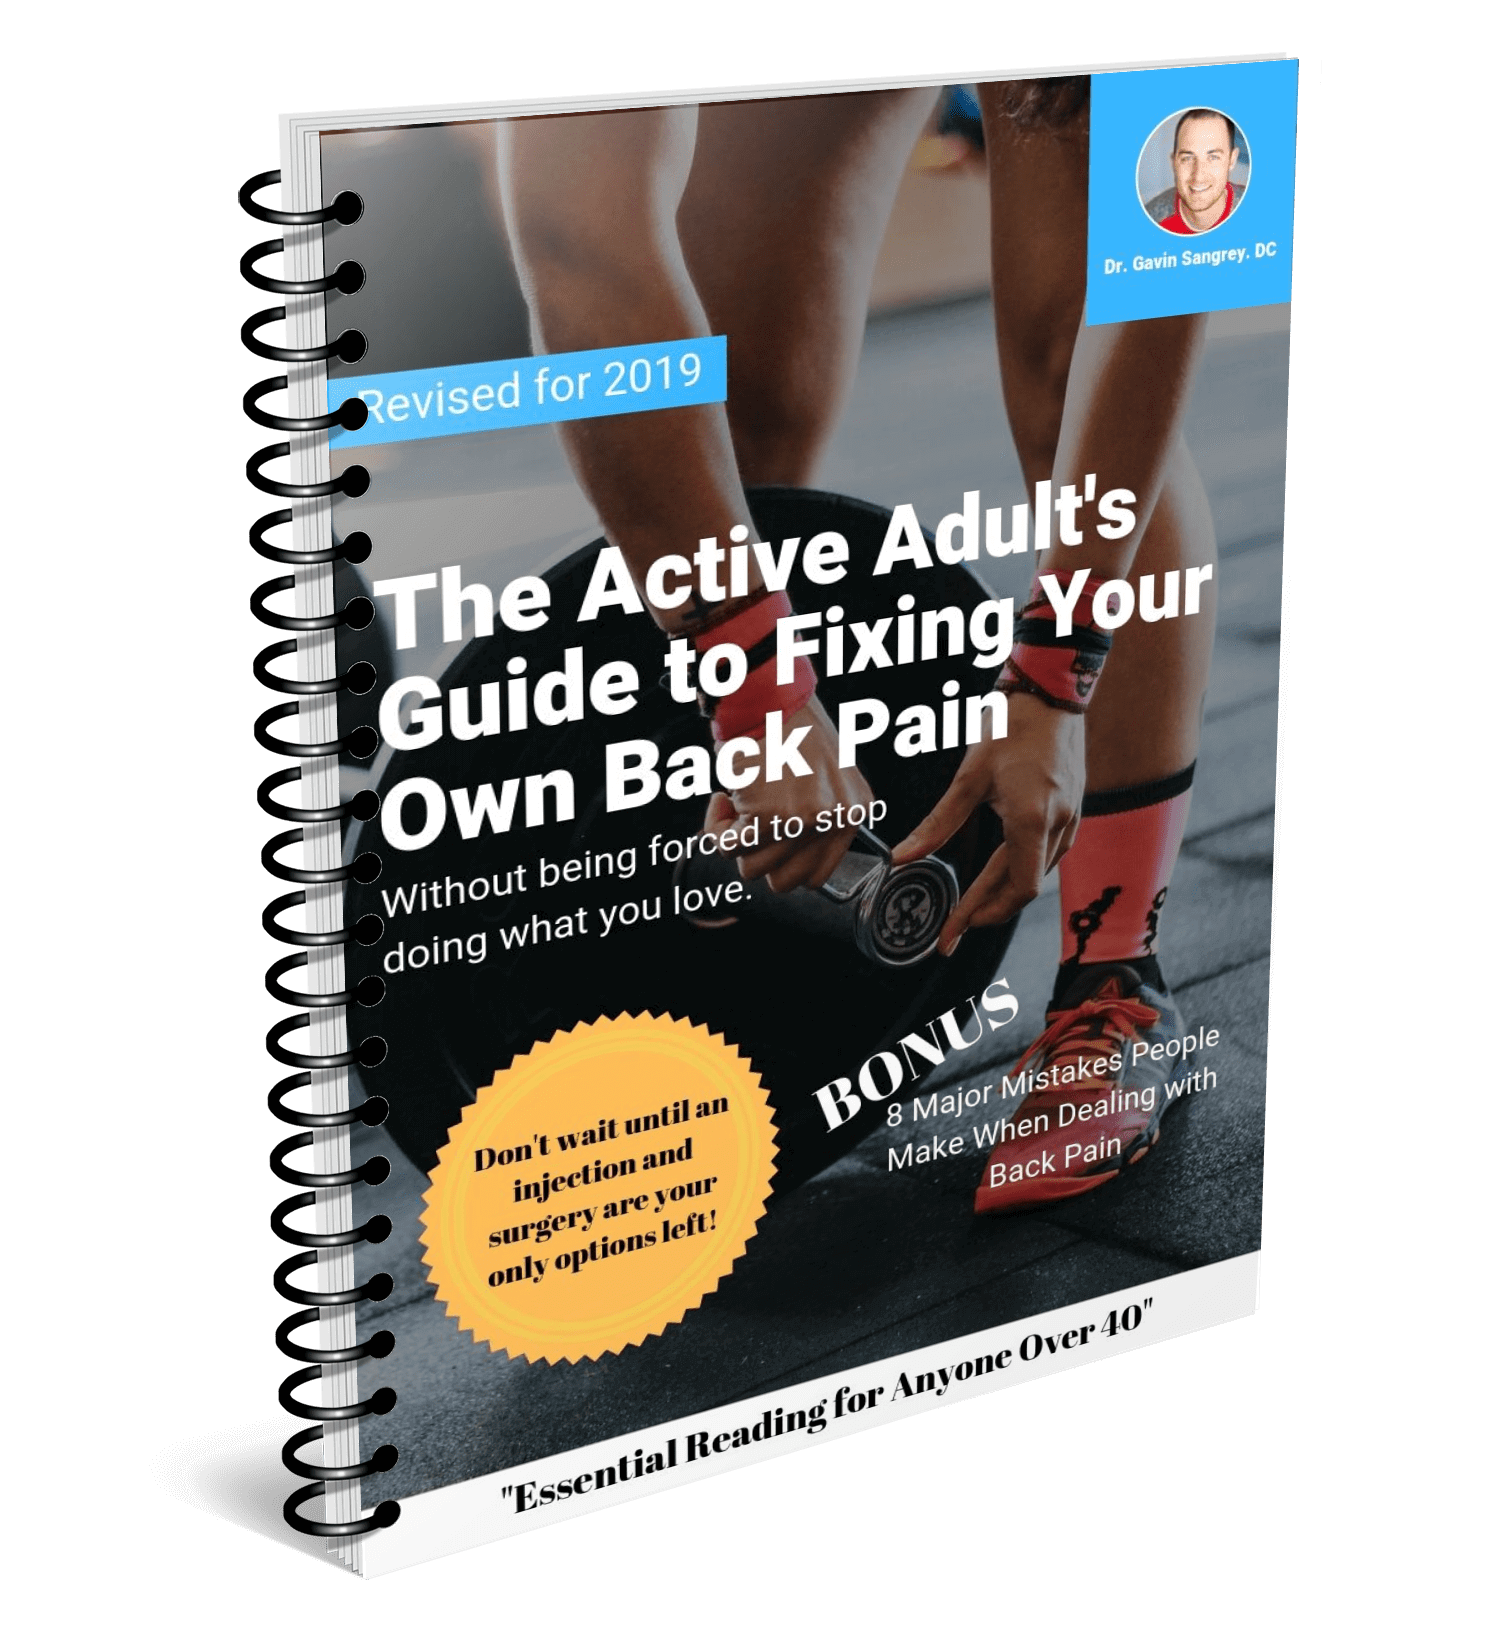 Free Instant Download Reveals: No Chiropractor Needed: The Active Adult Guide to Fixing Your Own Back Pain - Learn more about how to get relief from your back pain. We didn't hold back and packed this with tons of useable information.